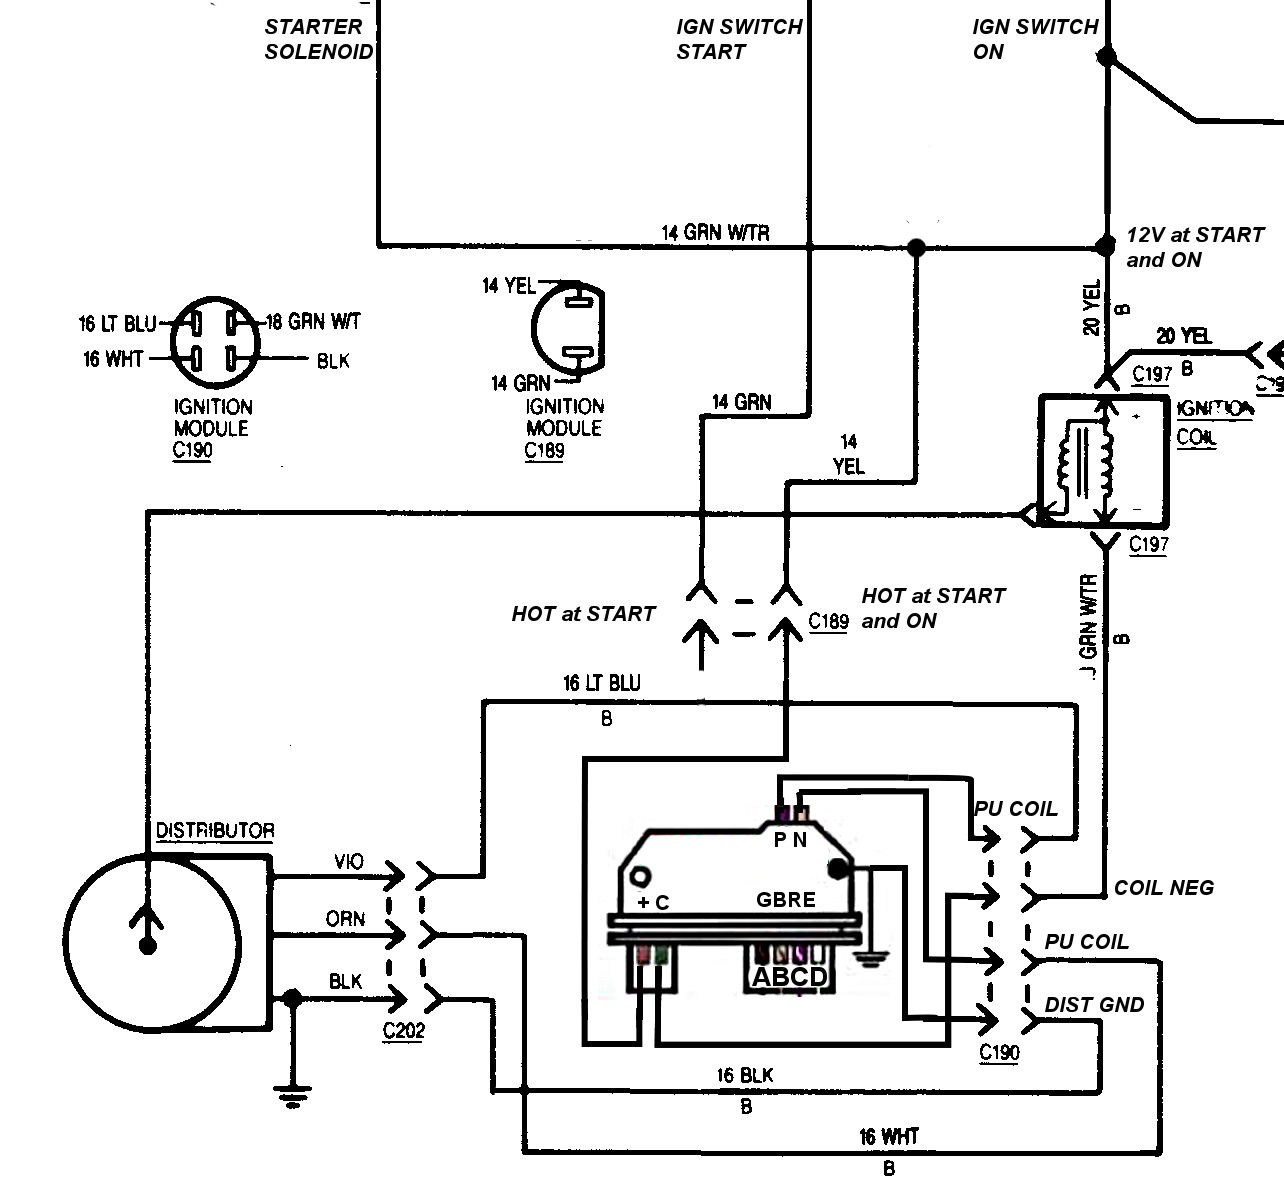 TBI+Wiring+1 troubled child gm tbi ignition wiring gm wiring diagrams online at webbmarketing.co